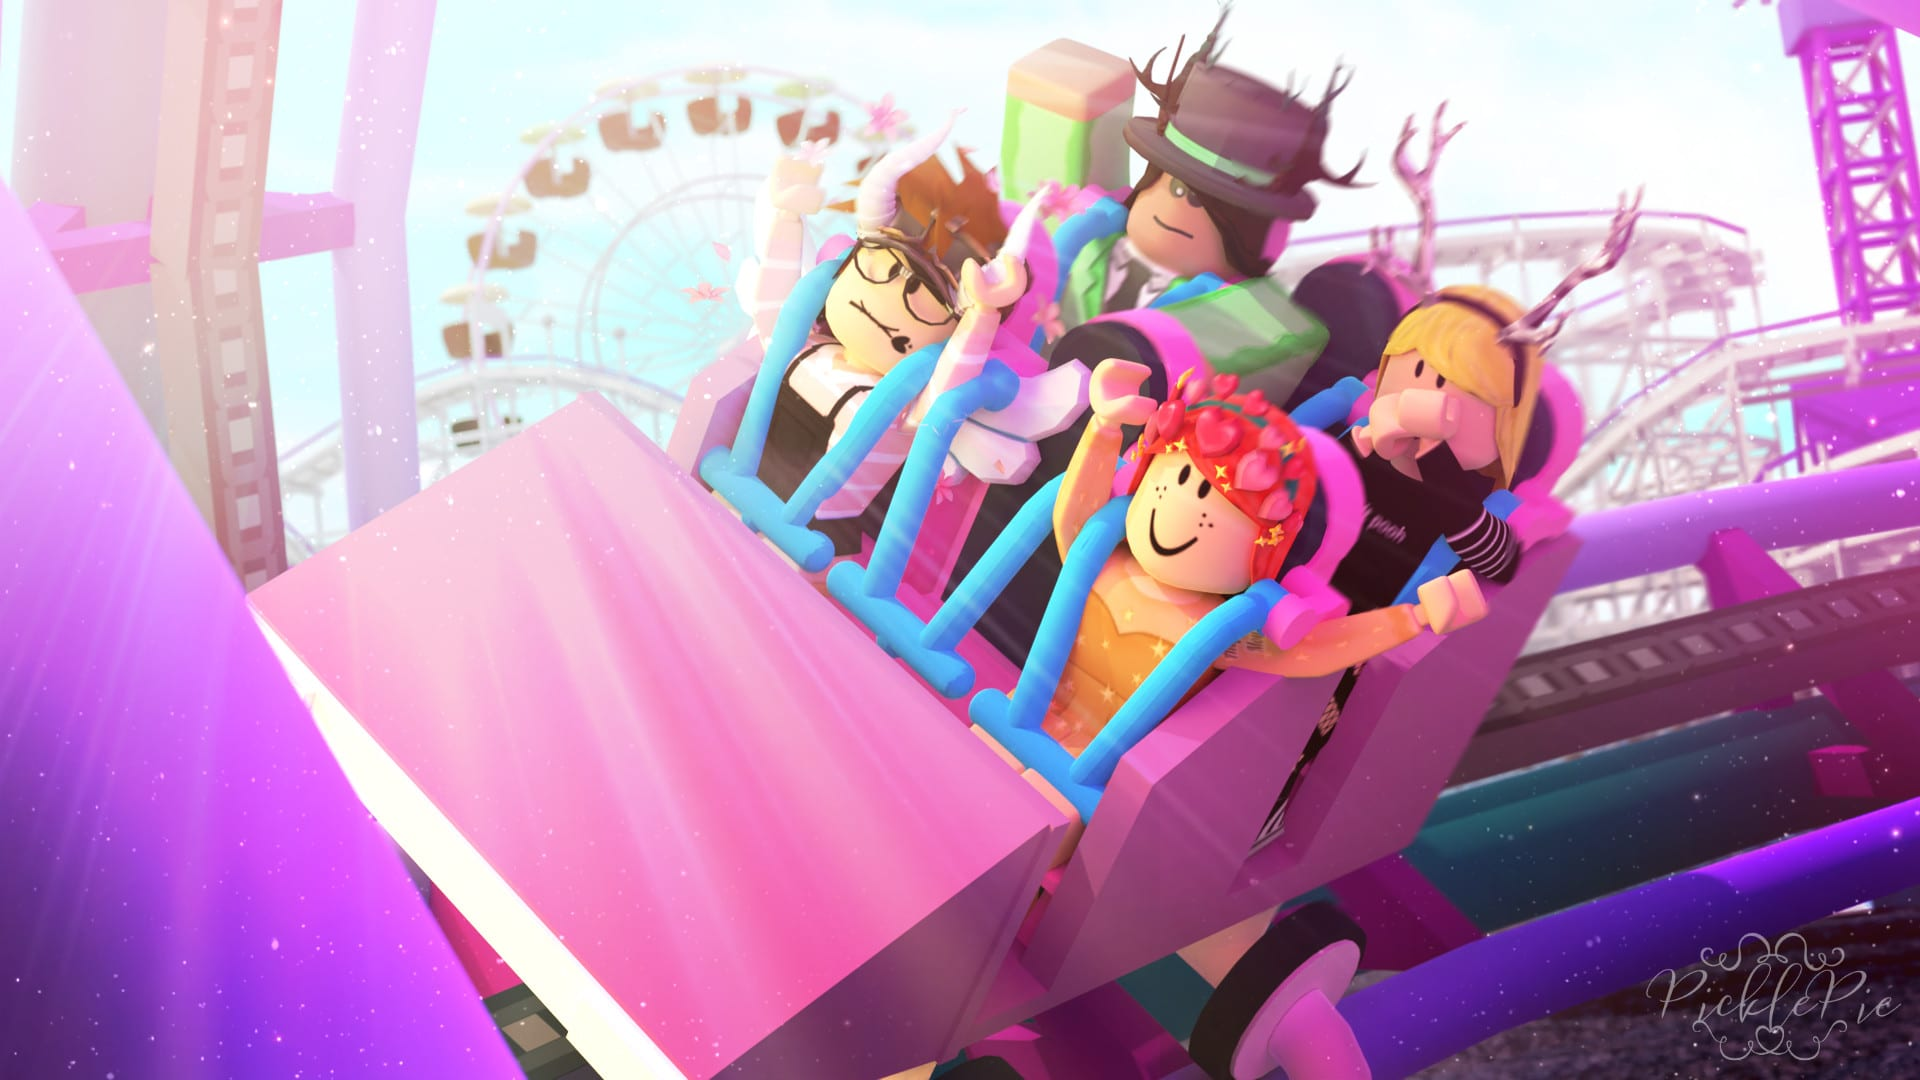 Cute Aesthetic Roblox Gfx Roblox Girl Pictures Make You A High Quality Roblox Gfx By Picklepieyt